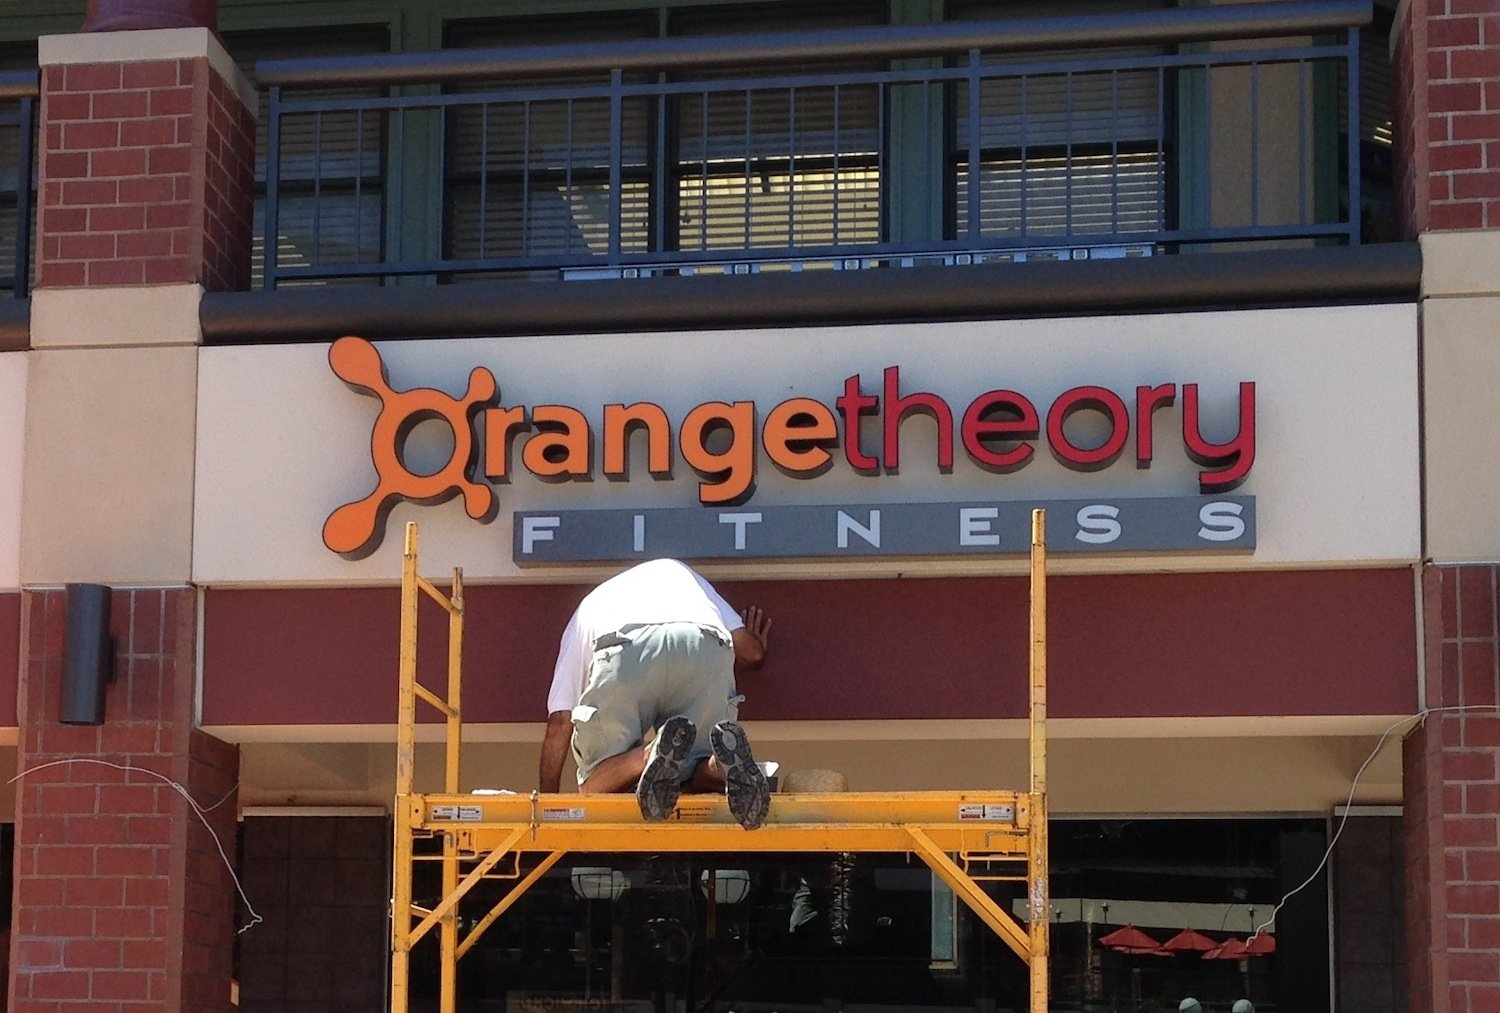 Orange theory Fitness - Hazard Center